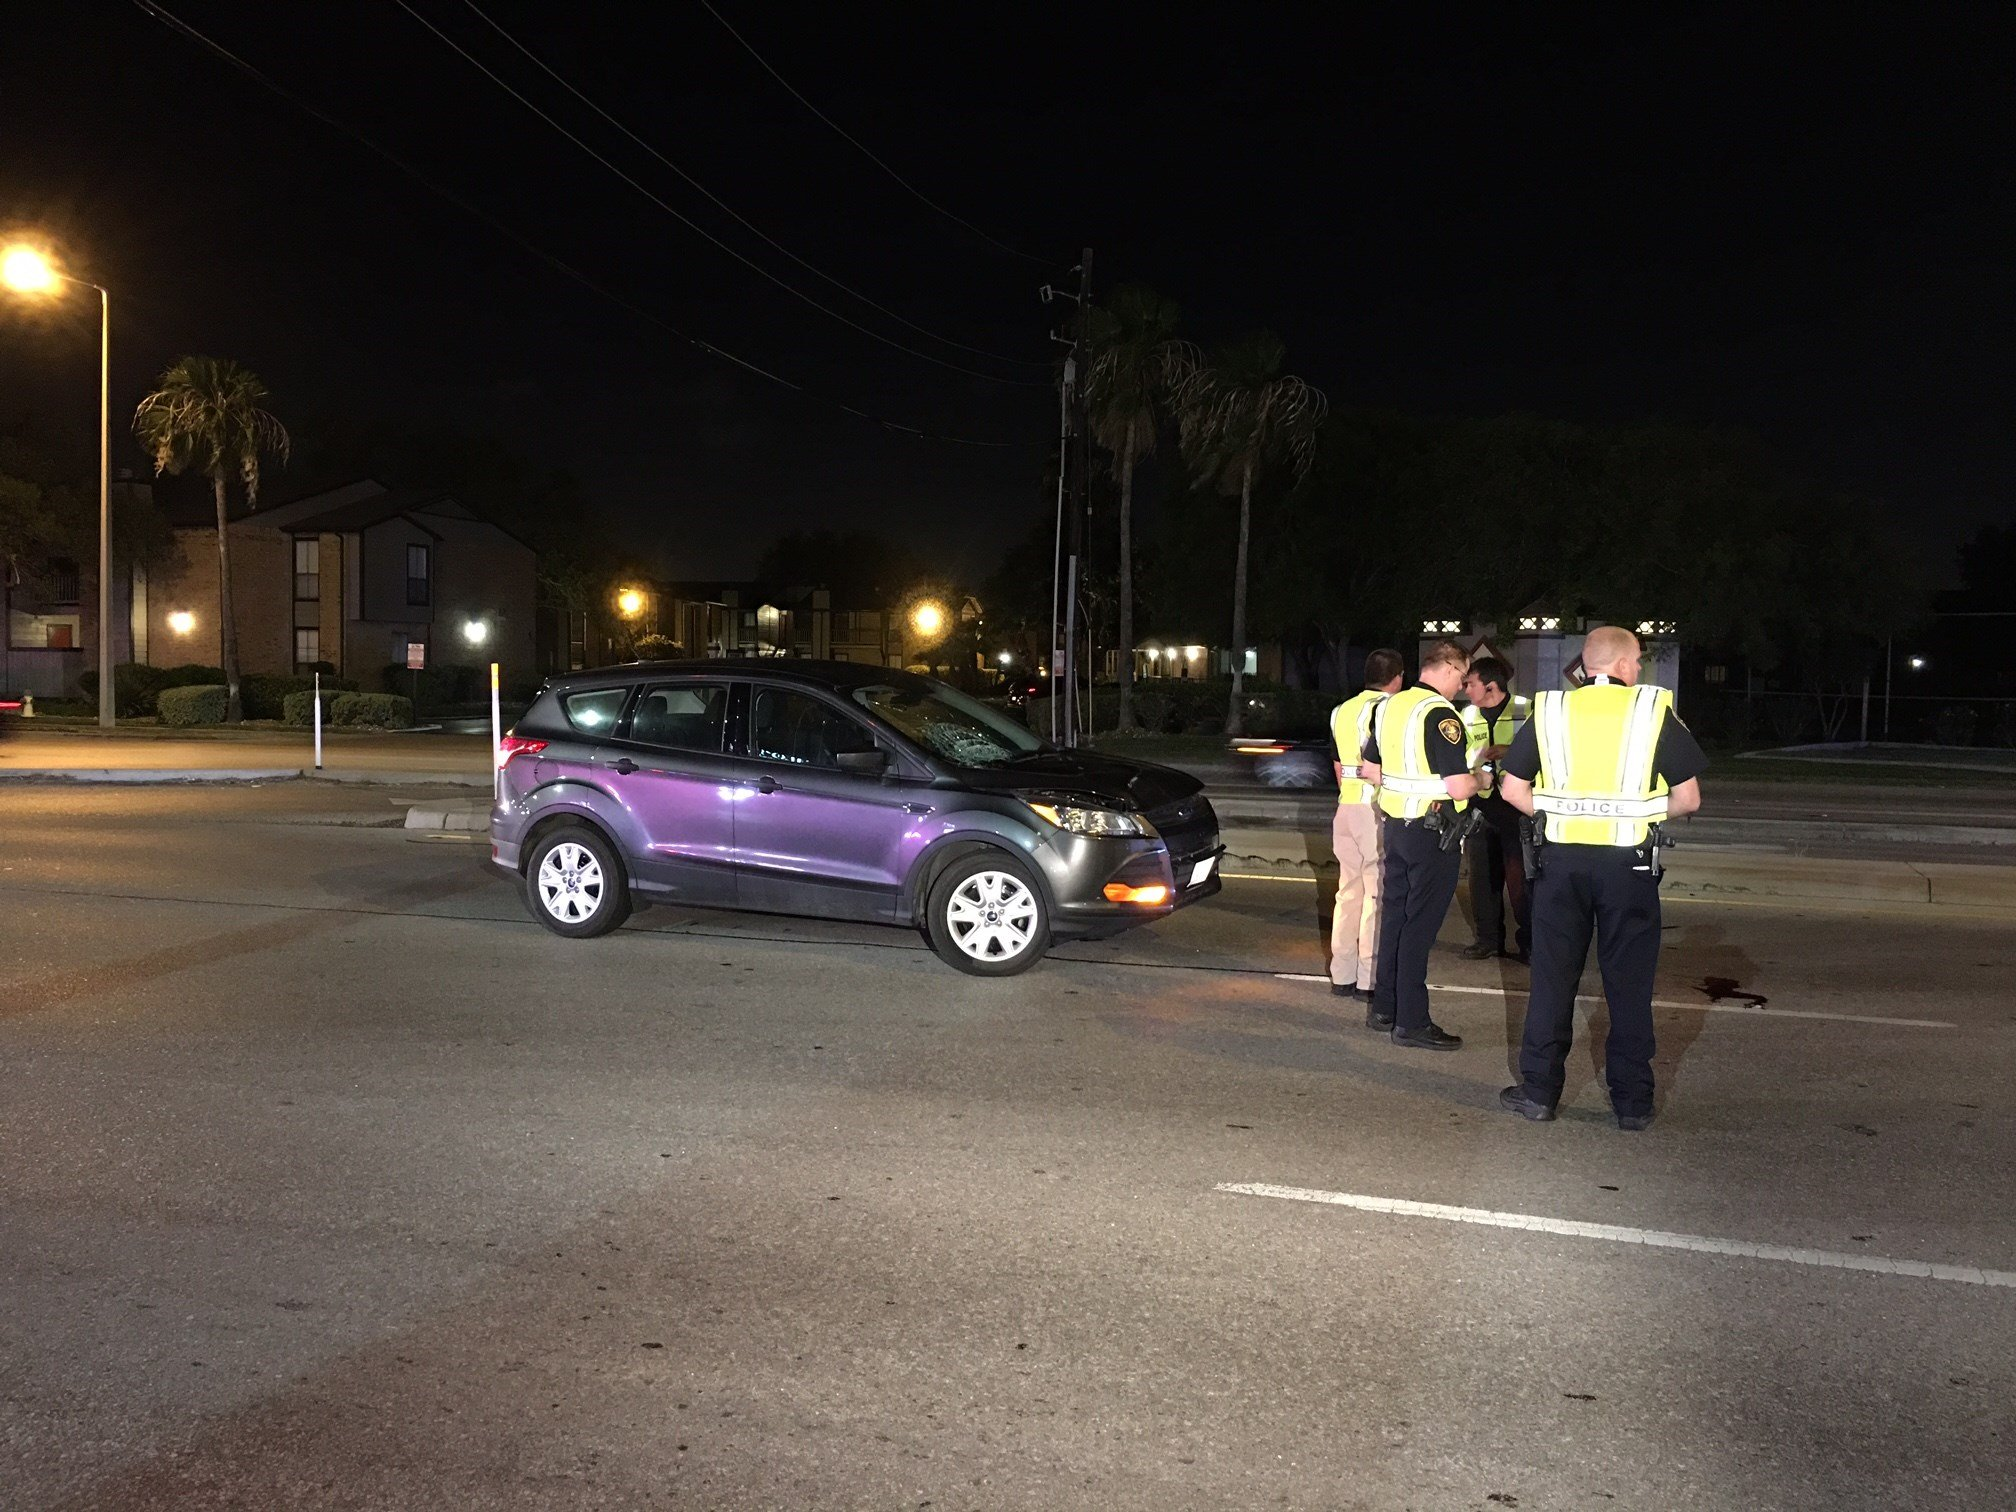 Crews shut down the eastbound side of Saratoga Blvd. after a pedestrian was hit by vehicle Friday night.